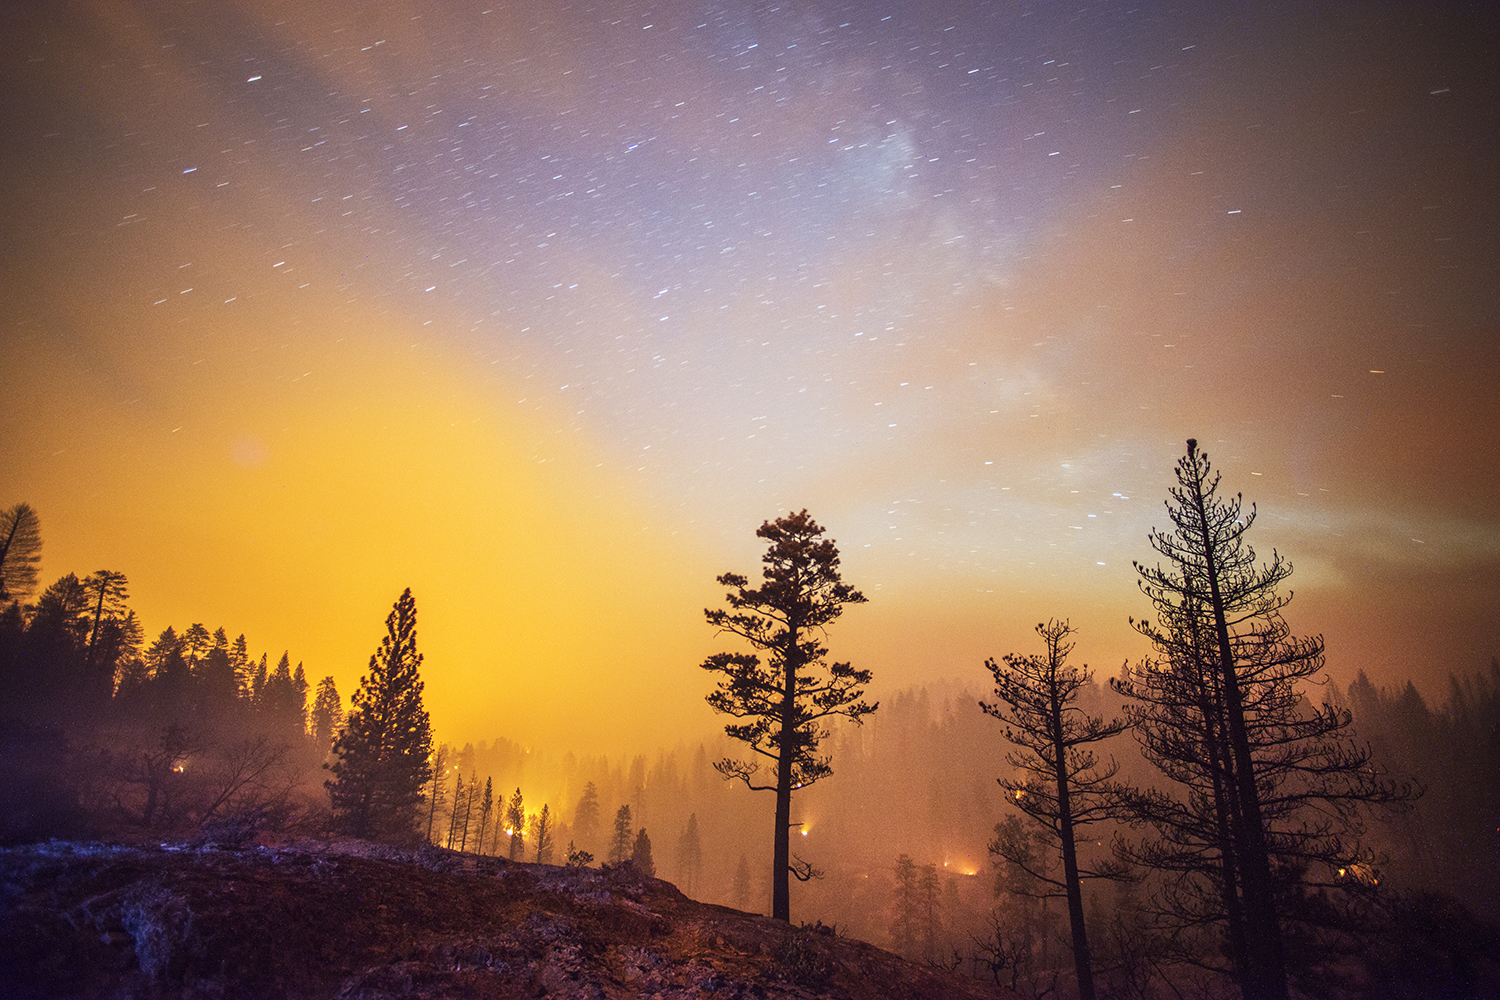 The French Fire, one of six major fires burning in California, burns in the Sierra National Forest near Mammoth Pool, Calif., August 1, 2014.